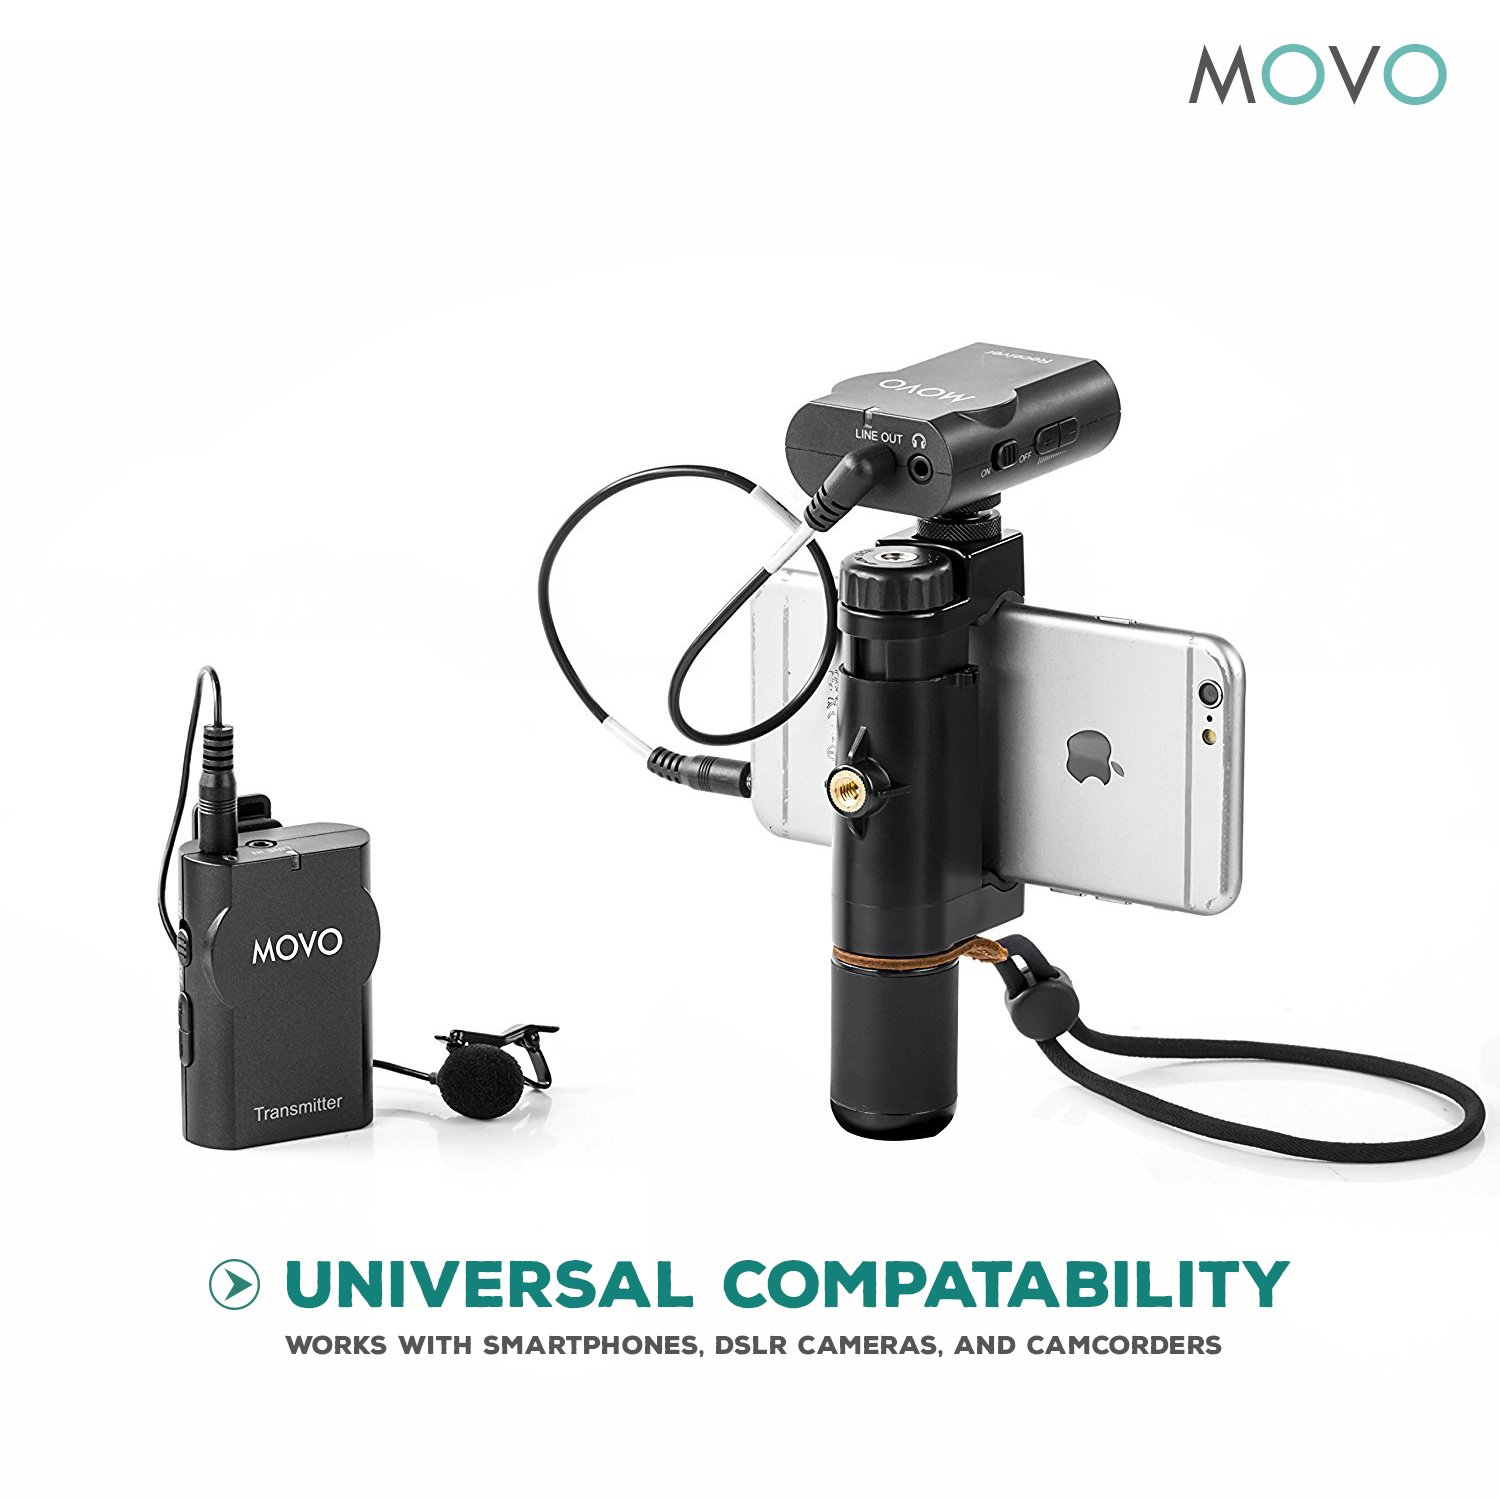 Movo WMIC10 2.4GHz Wireless Lavalier Microphone System for DSLR Cameras, iPhone/iPad/Android Smartphones, Camcorders (50-foot Transmission Range) by Movo (Image #7)